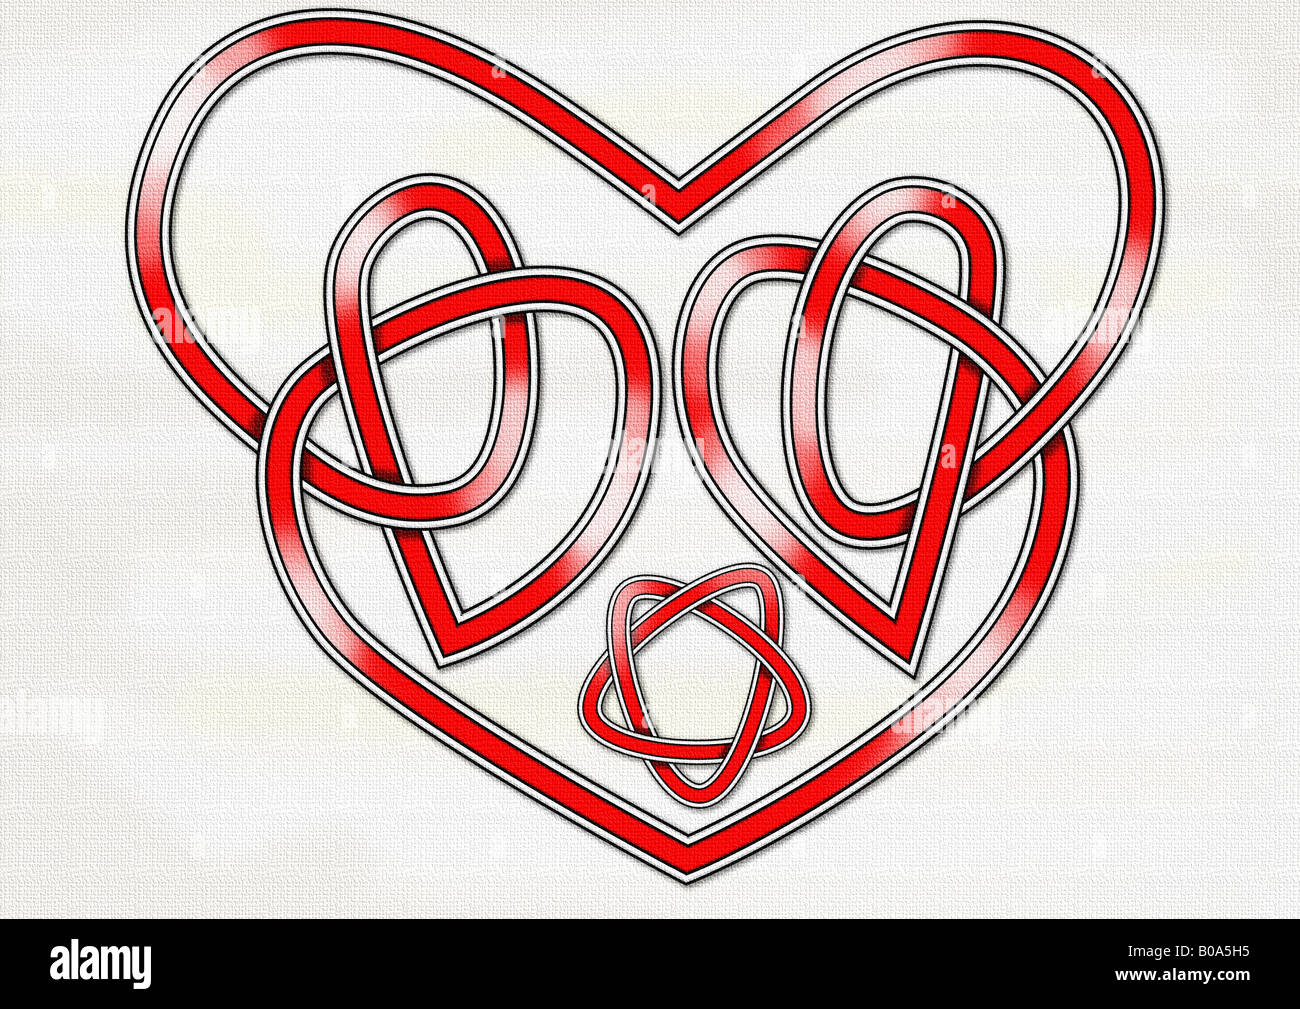 An original Celtic knot in the form of a heart and interlocking hearts - Stock Image